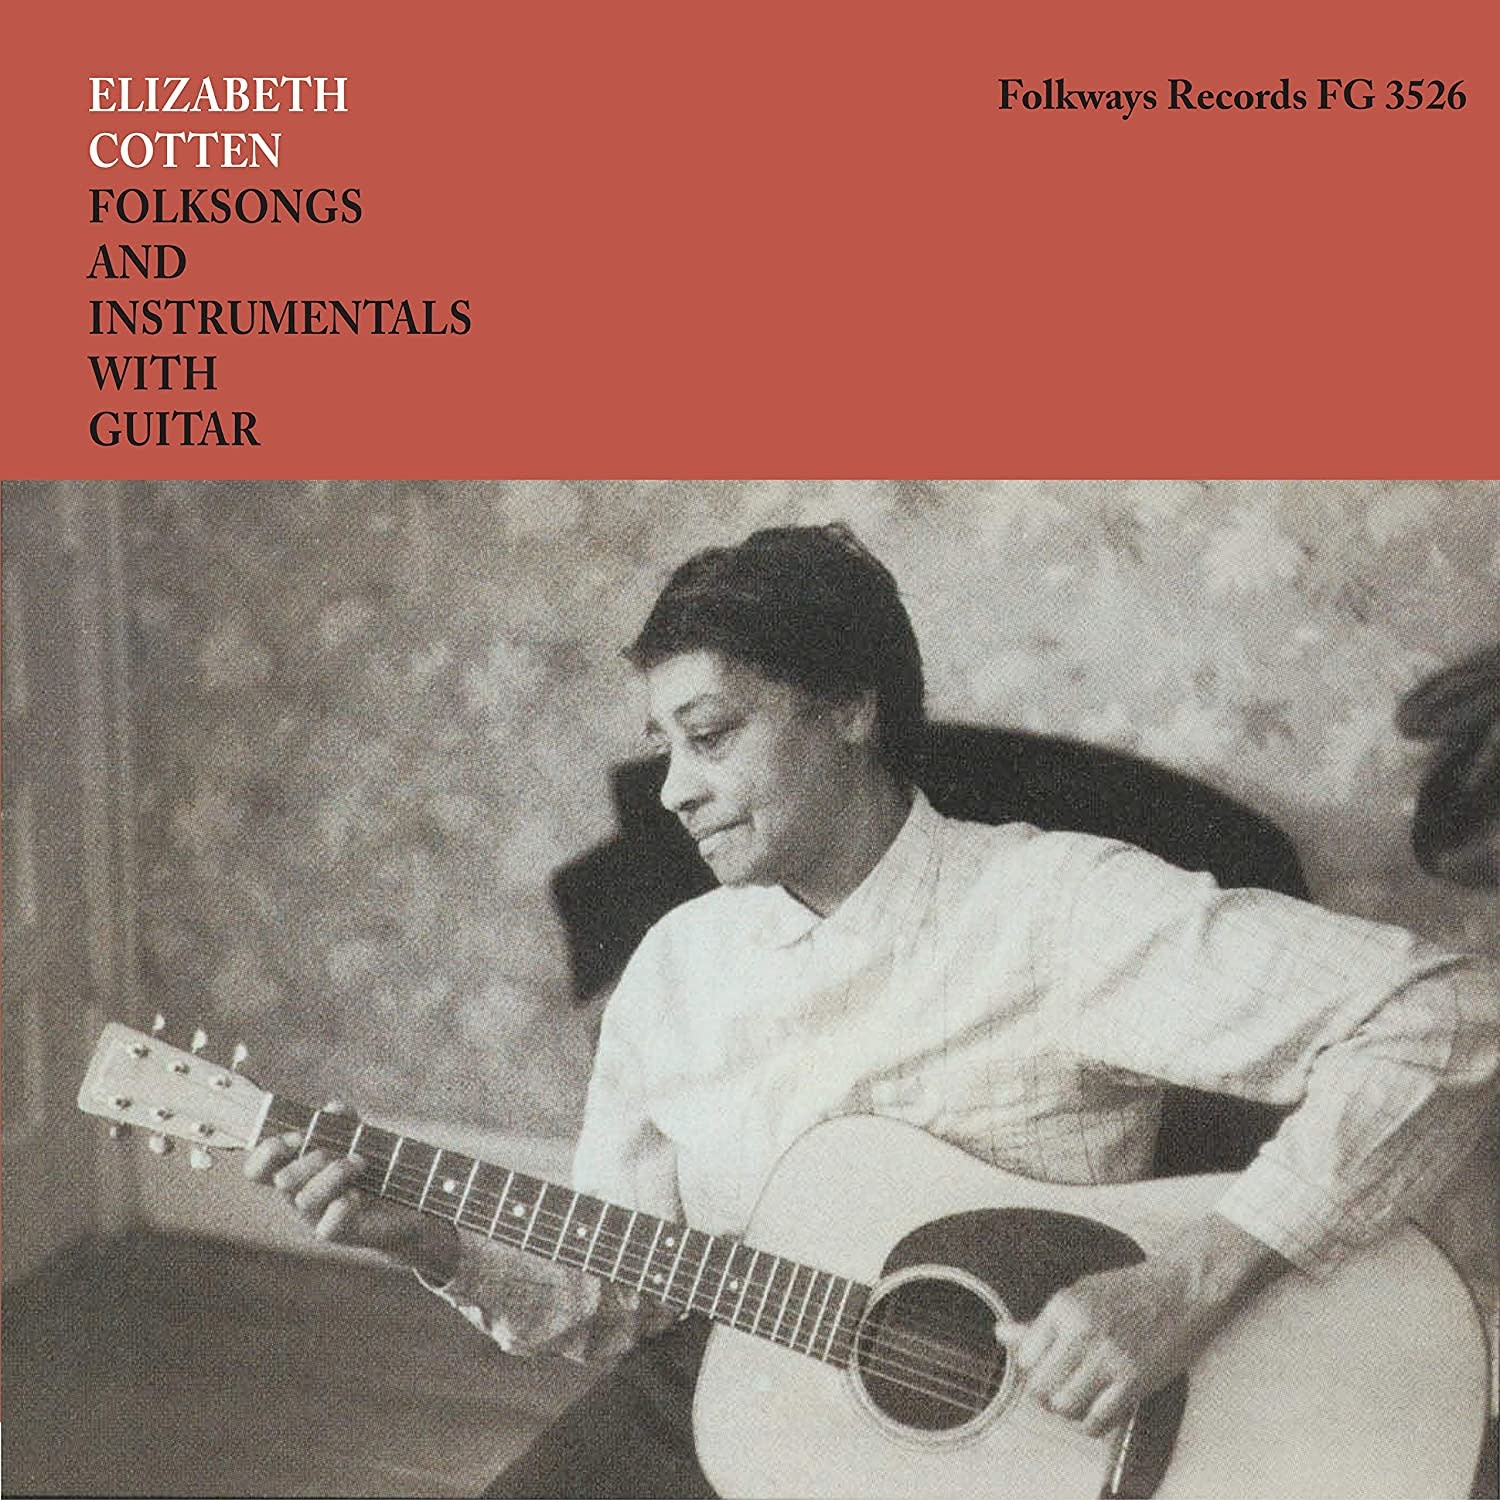 Folk/Country Elizabeth Cotten - Folksongs And Instrumentals With Guitar